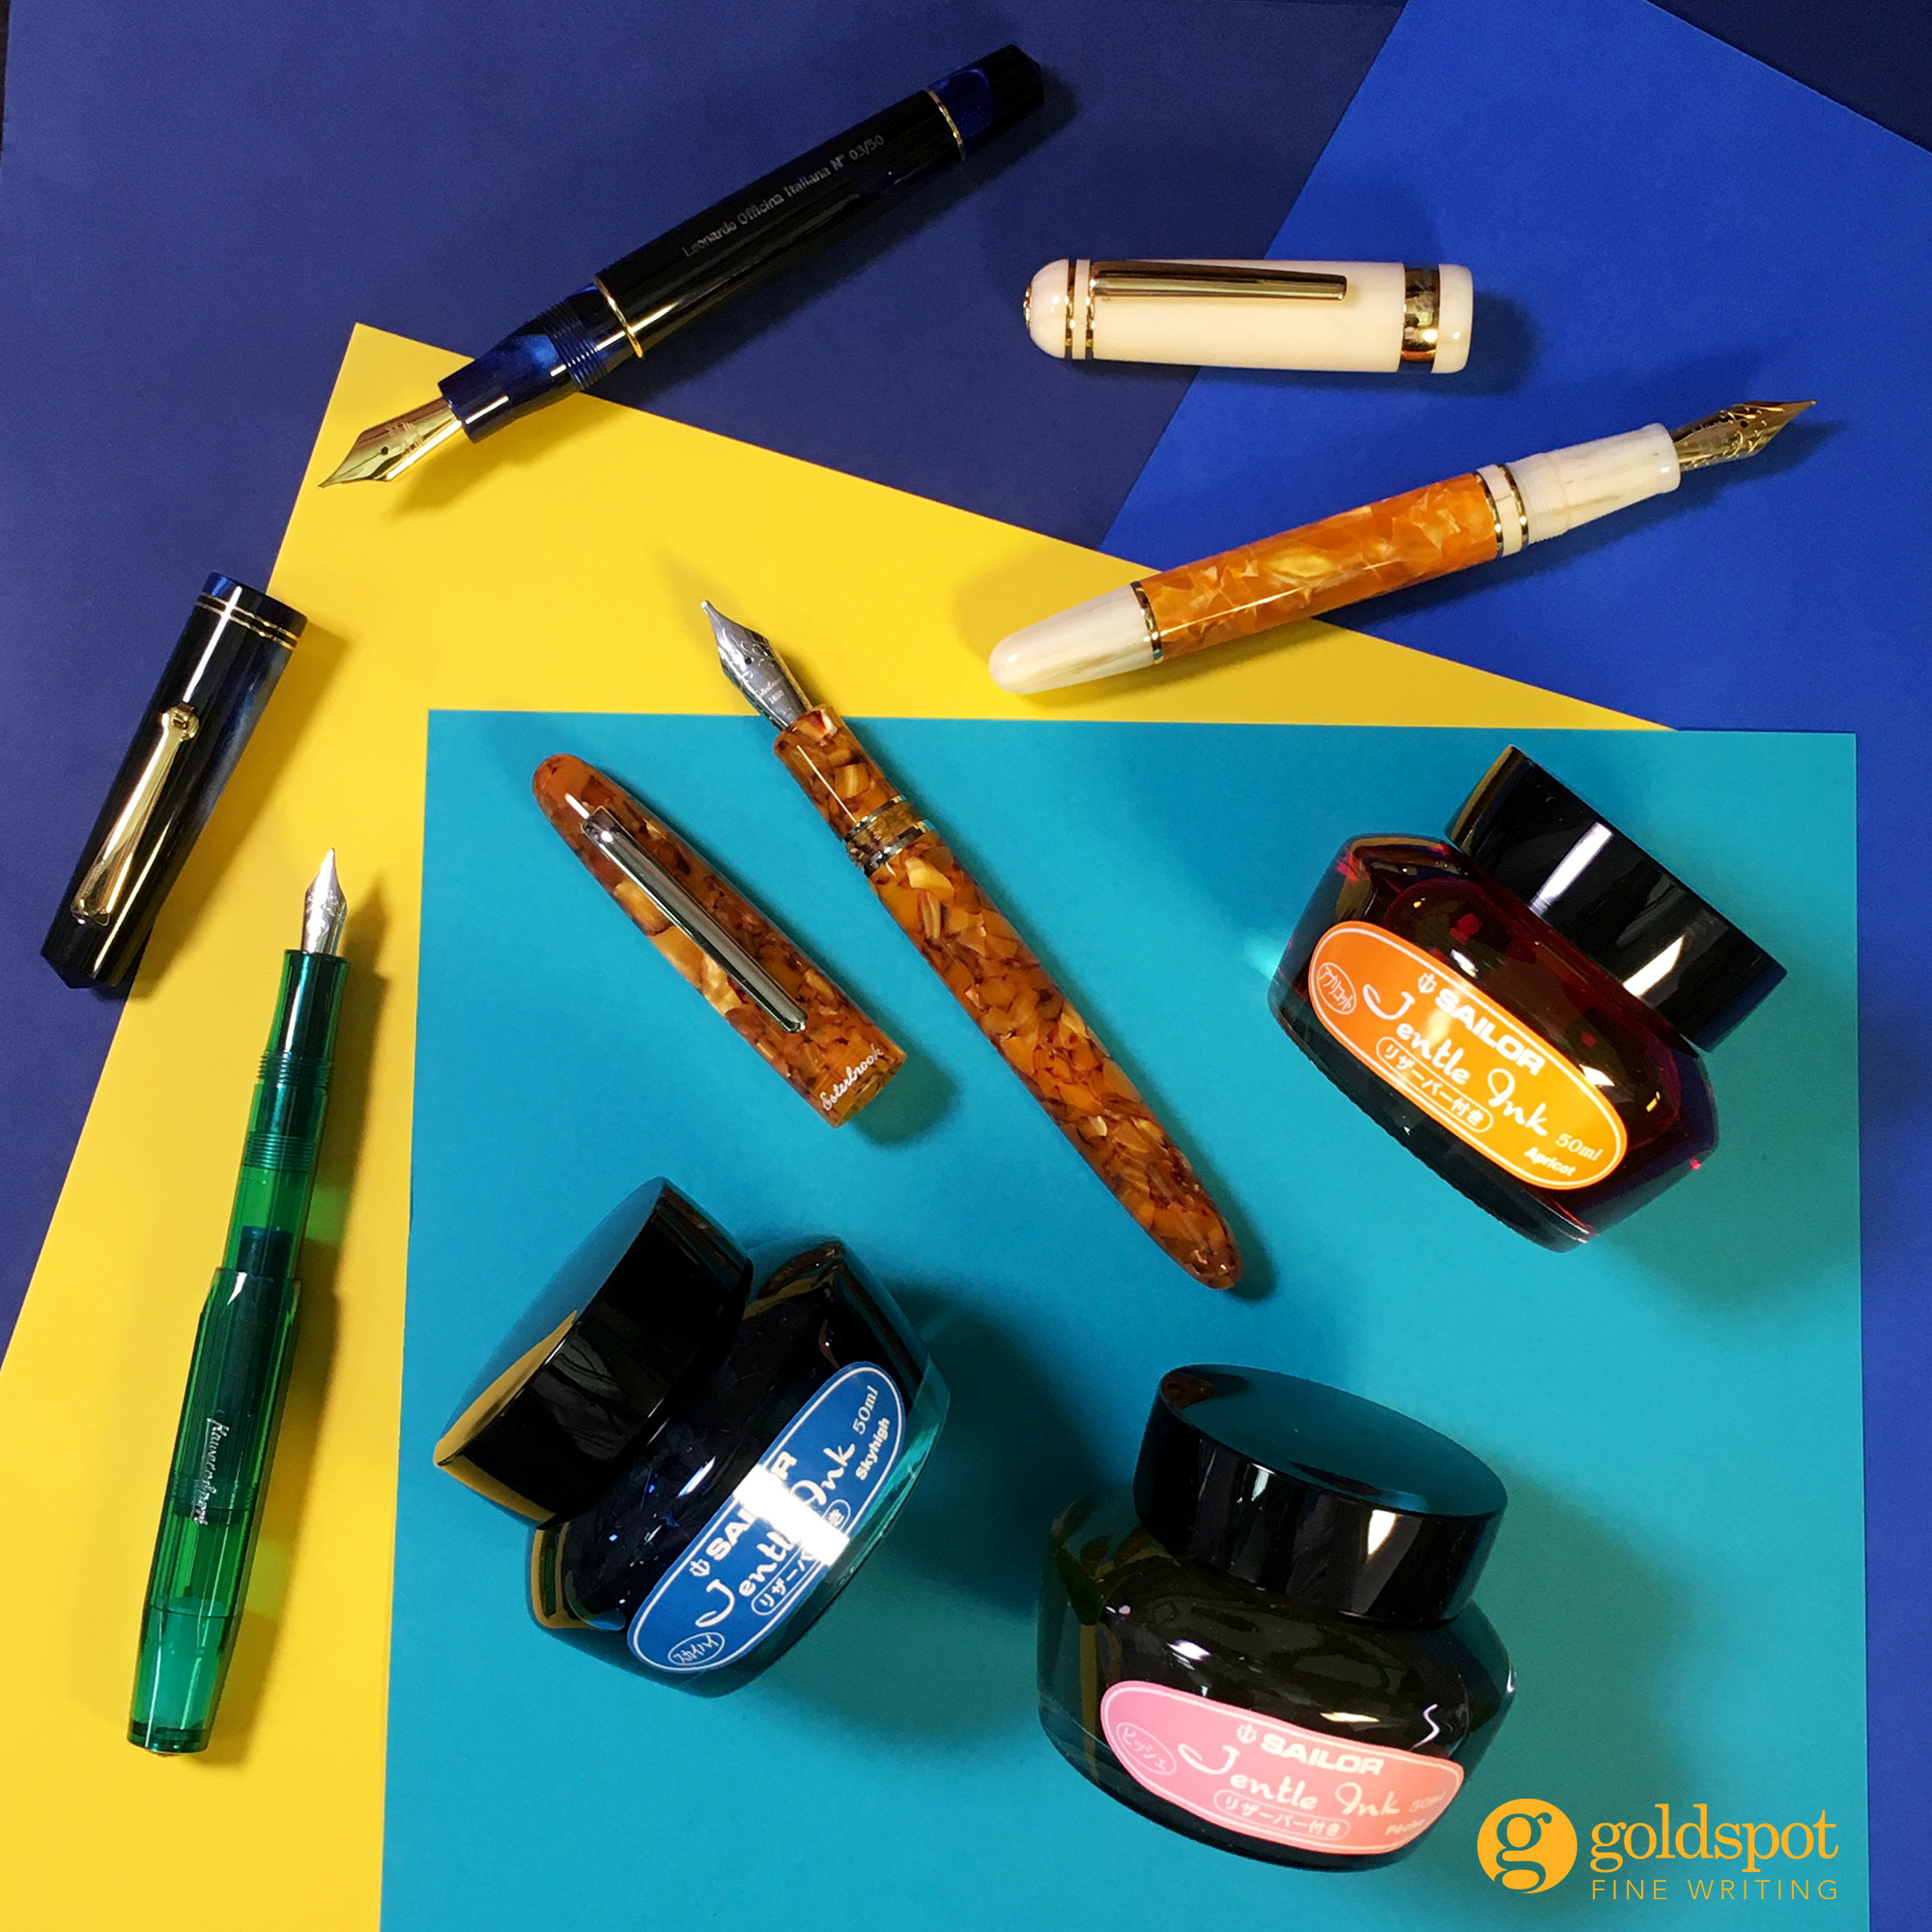 Fountain pen giveaway may 2019